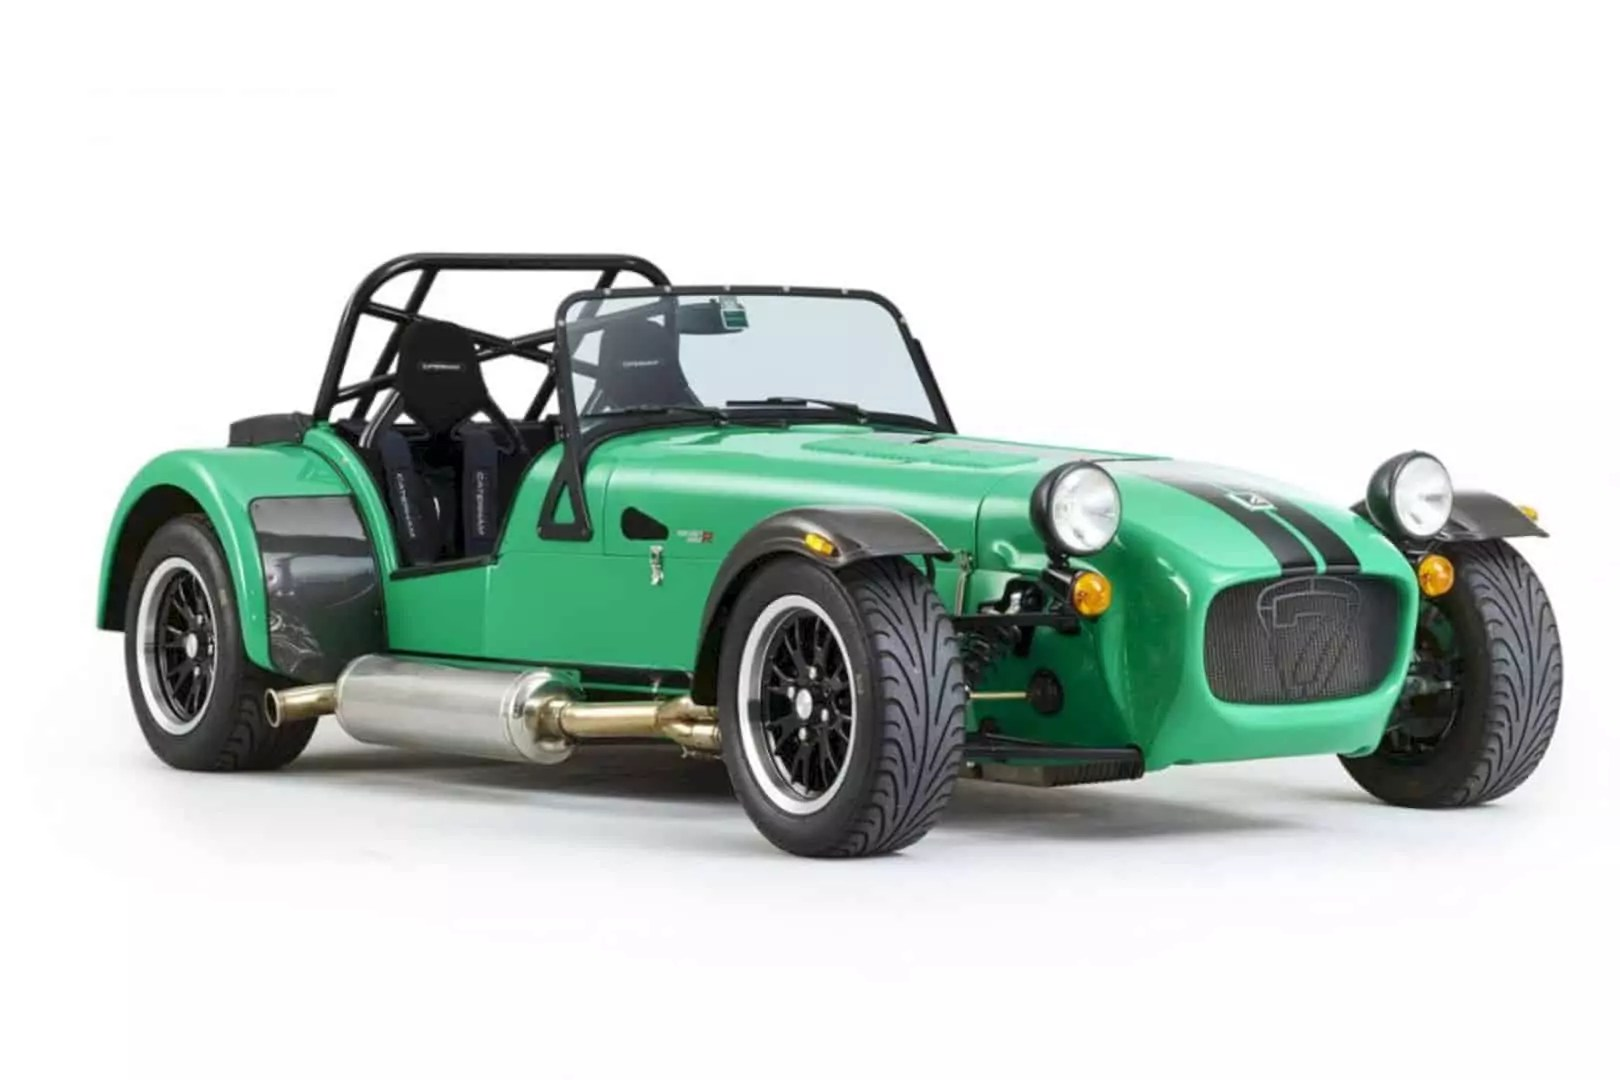 Caterham Seven 360: The Perfect Balance between Road Car and Race Car